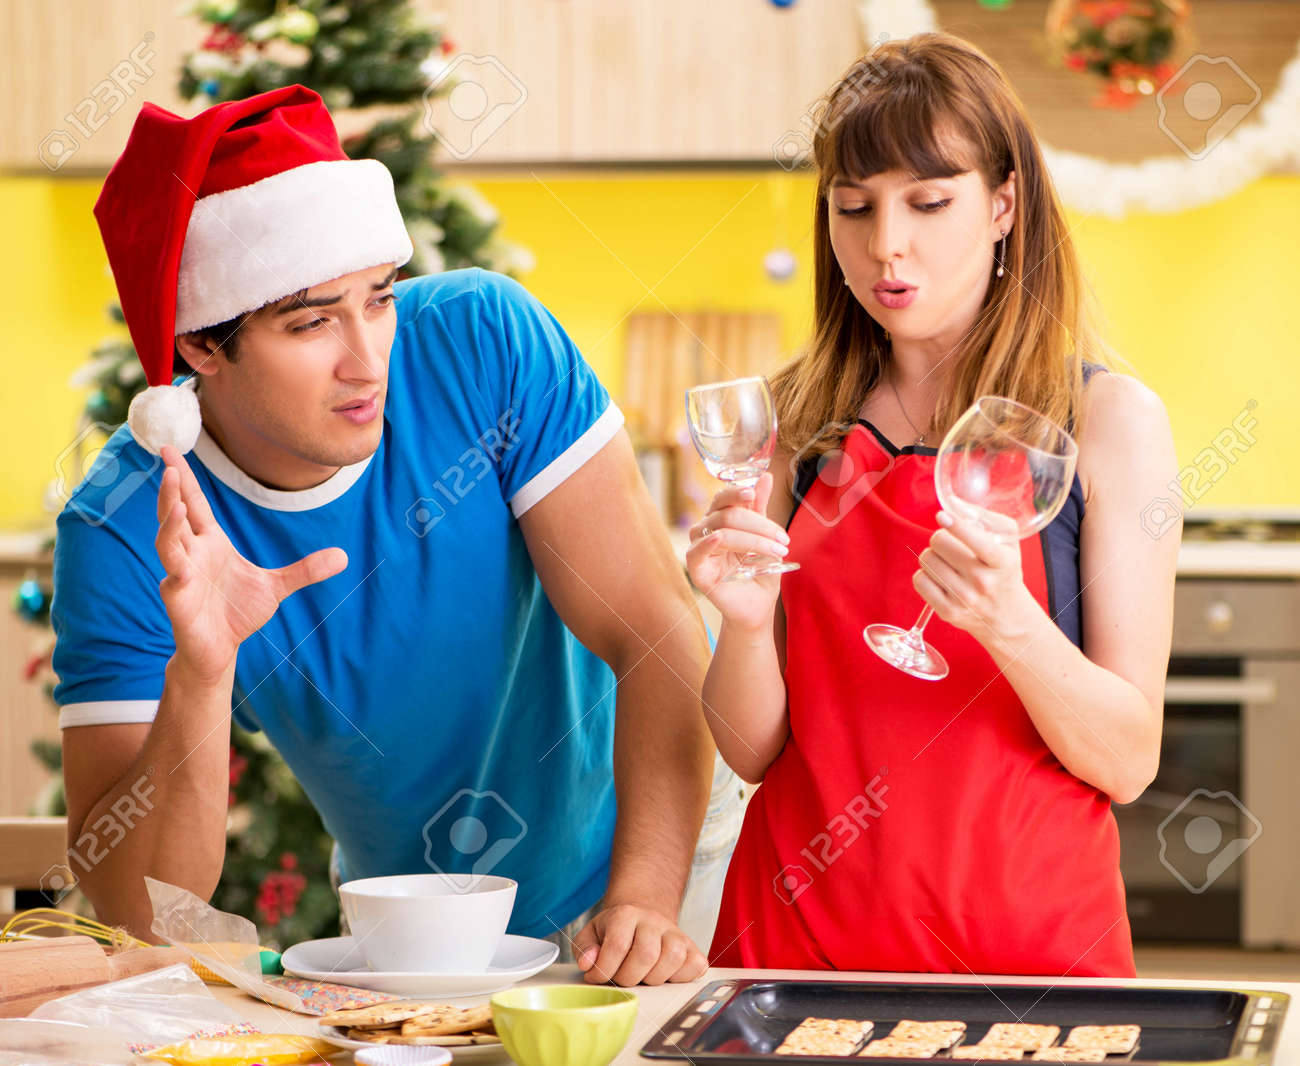 Young couple celebrating Christmas in kitchen - 146457700